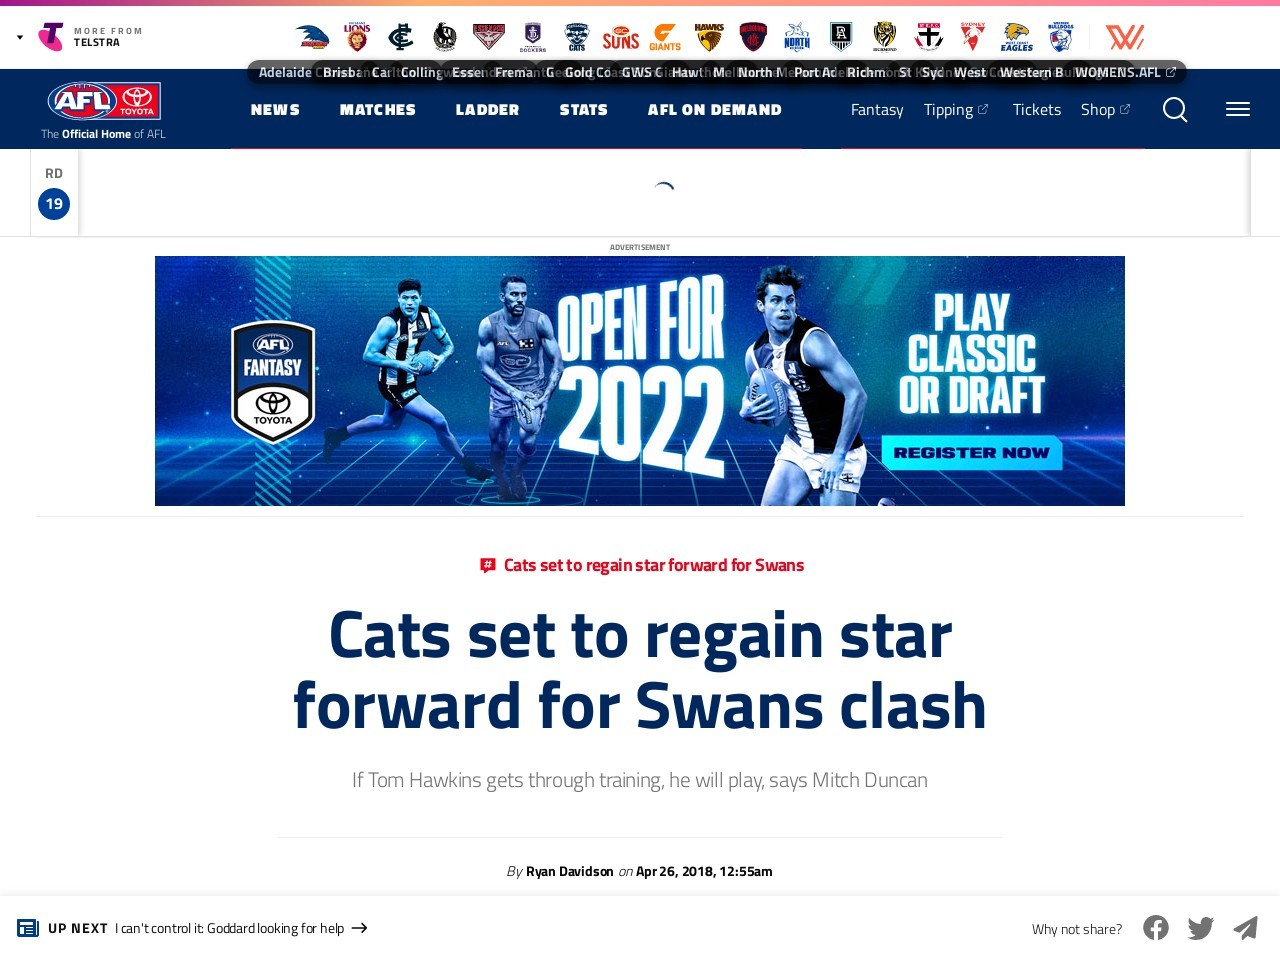 Cats set to regain star forward for Swans clash